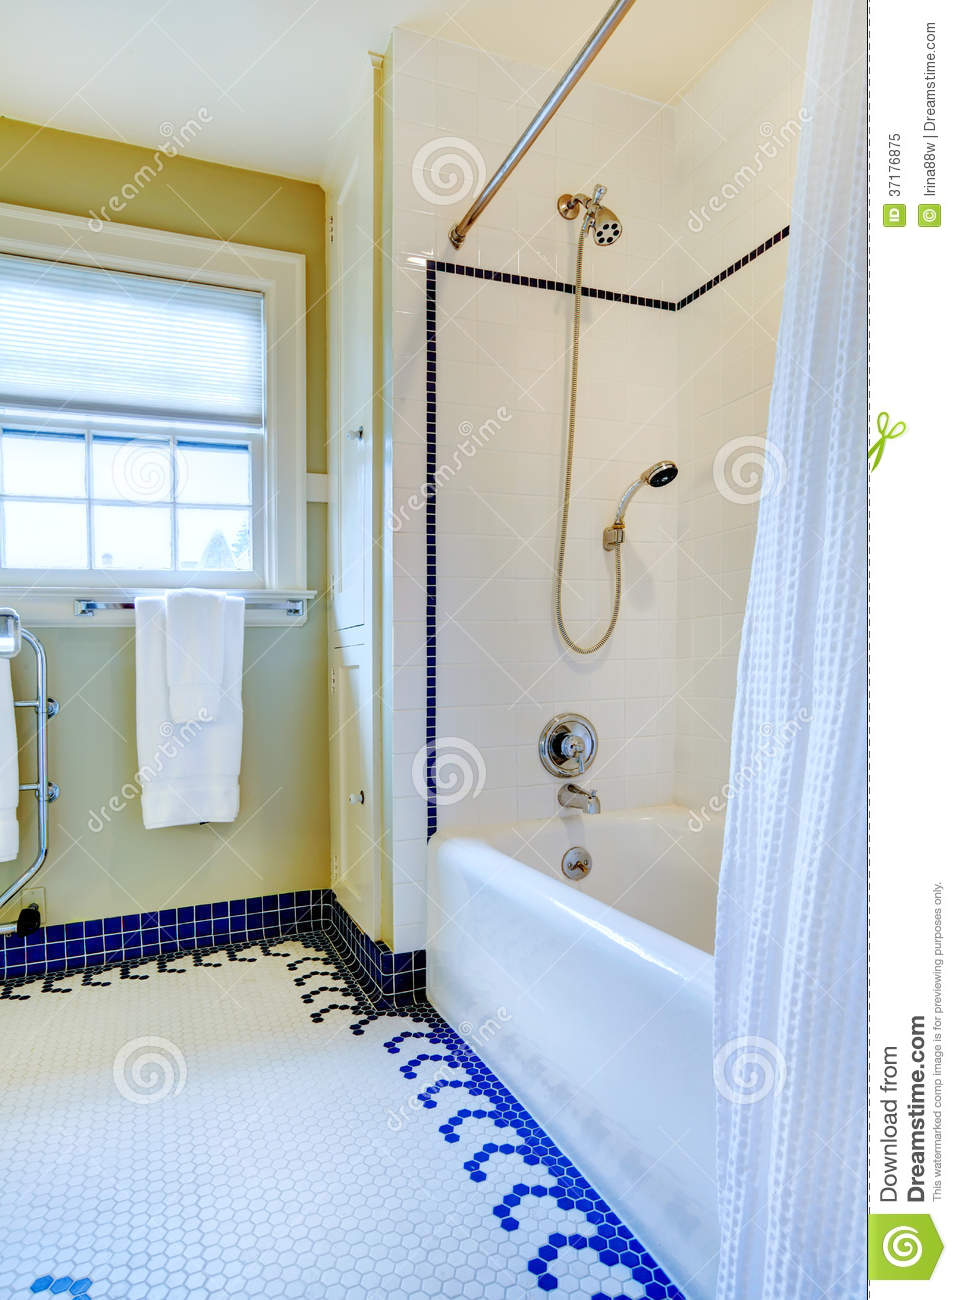 Blue and white bathroom floor tiles - Bright Yellow And White Bathroom With Blue Tile Floor